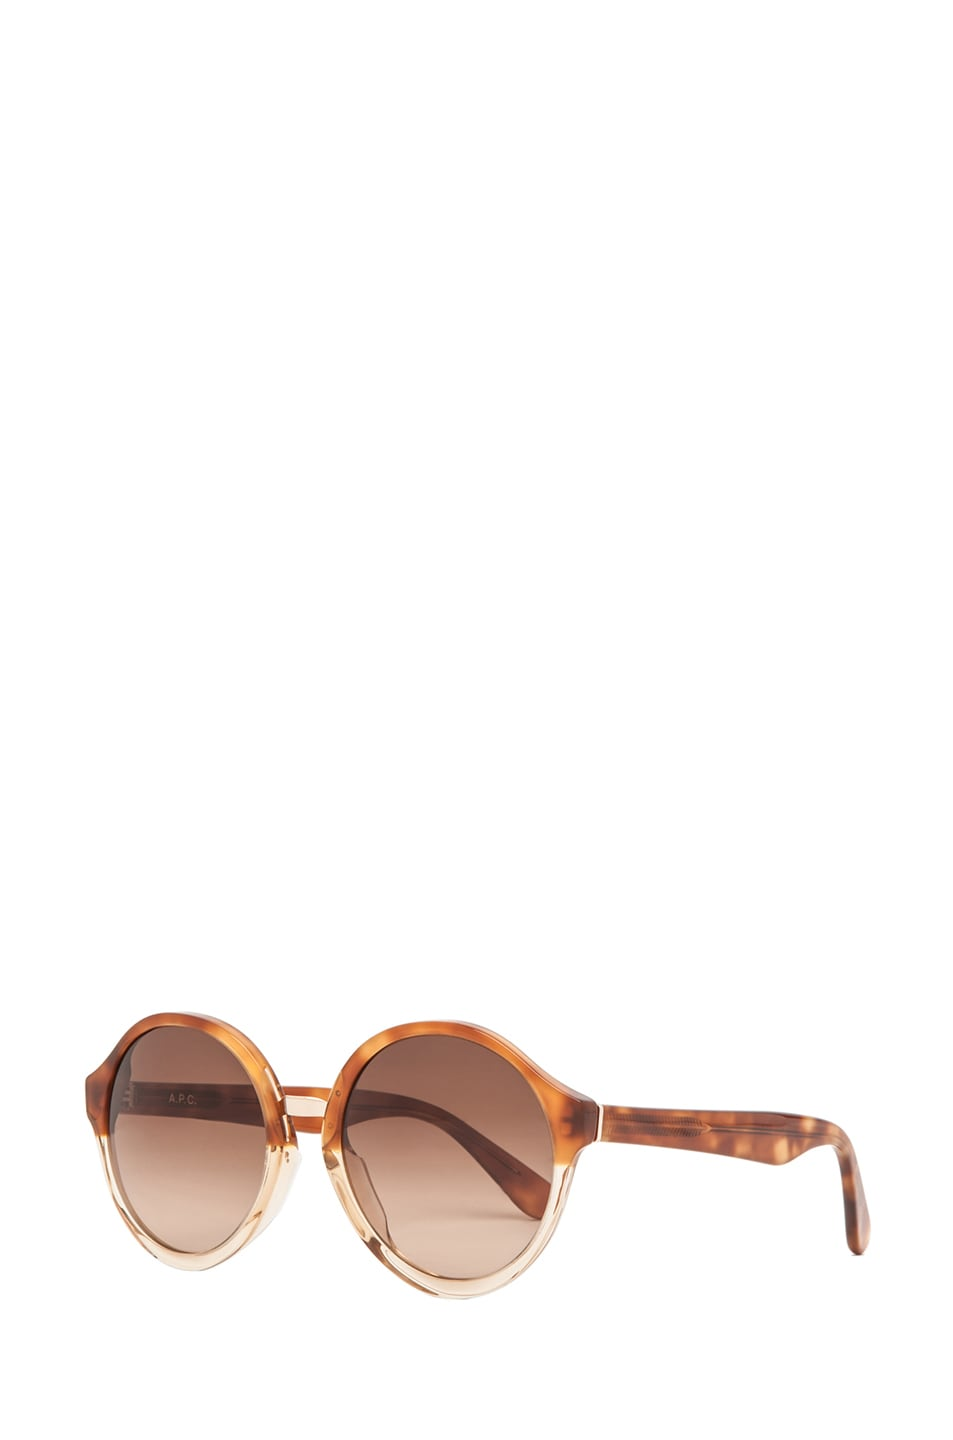 Image 2 of A.P.C. Acetate Retro Super Future Sunglasses in Caramel